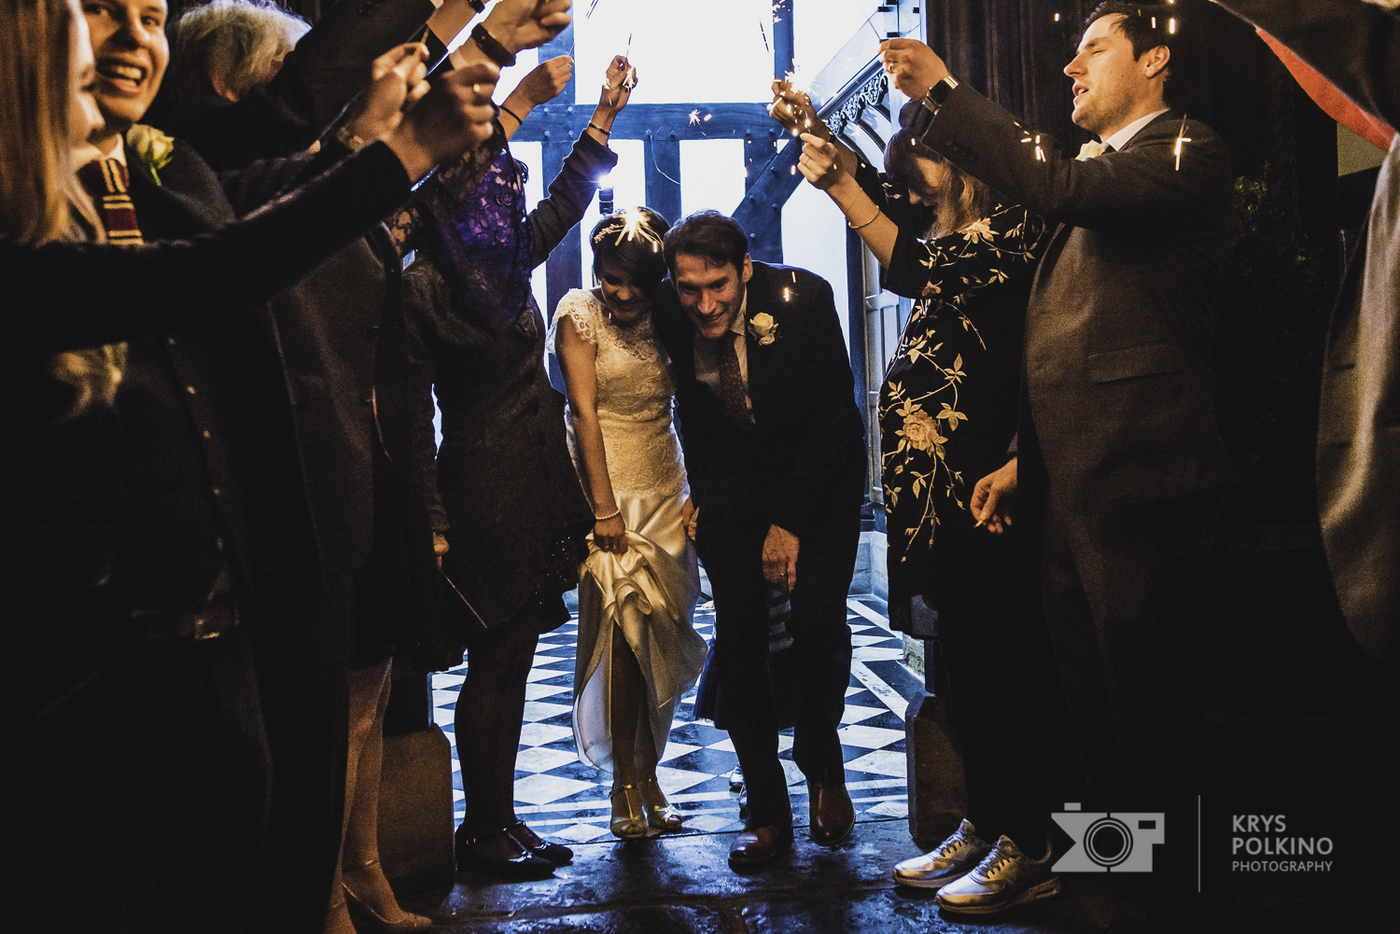 Laura and Jack - Wedding Photography at Hillbark, the UK's smallest five star hotel.